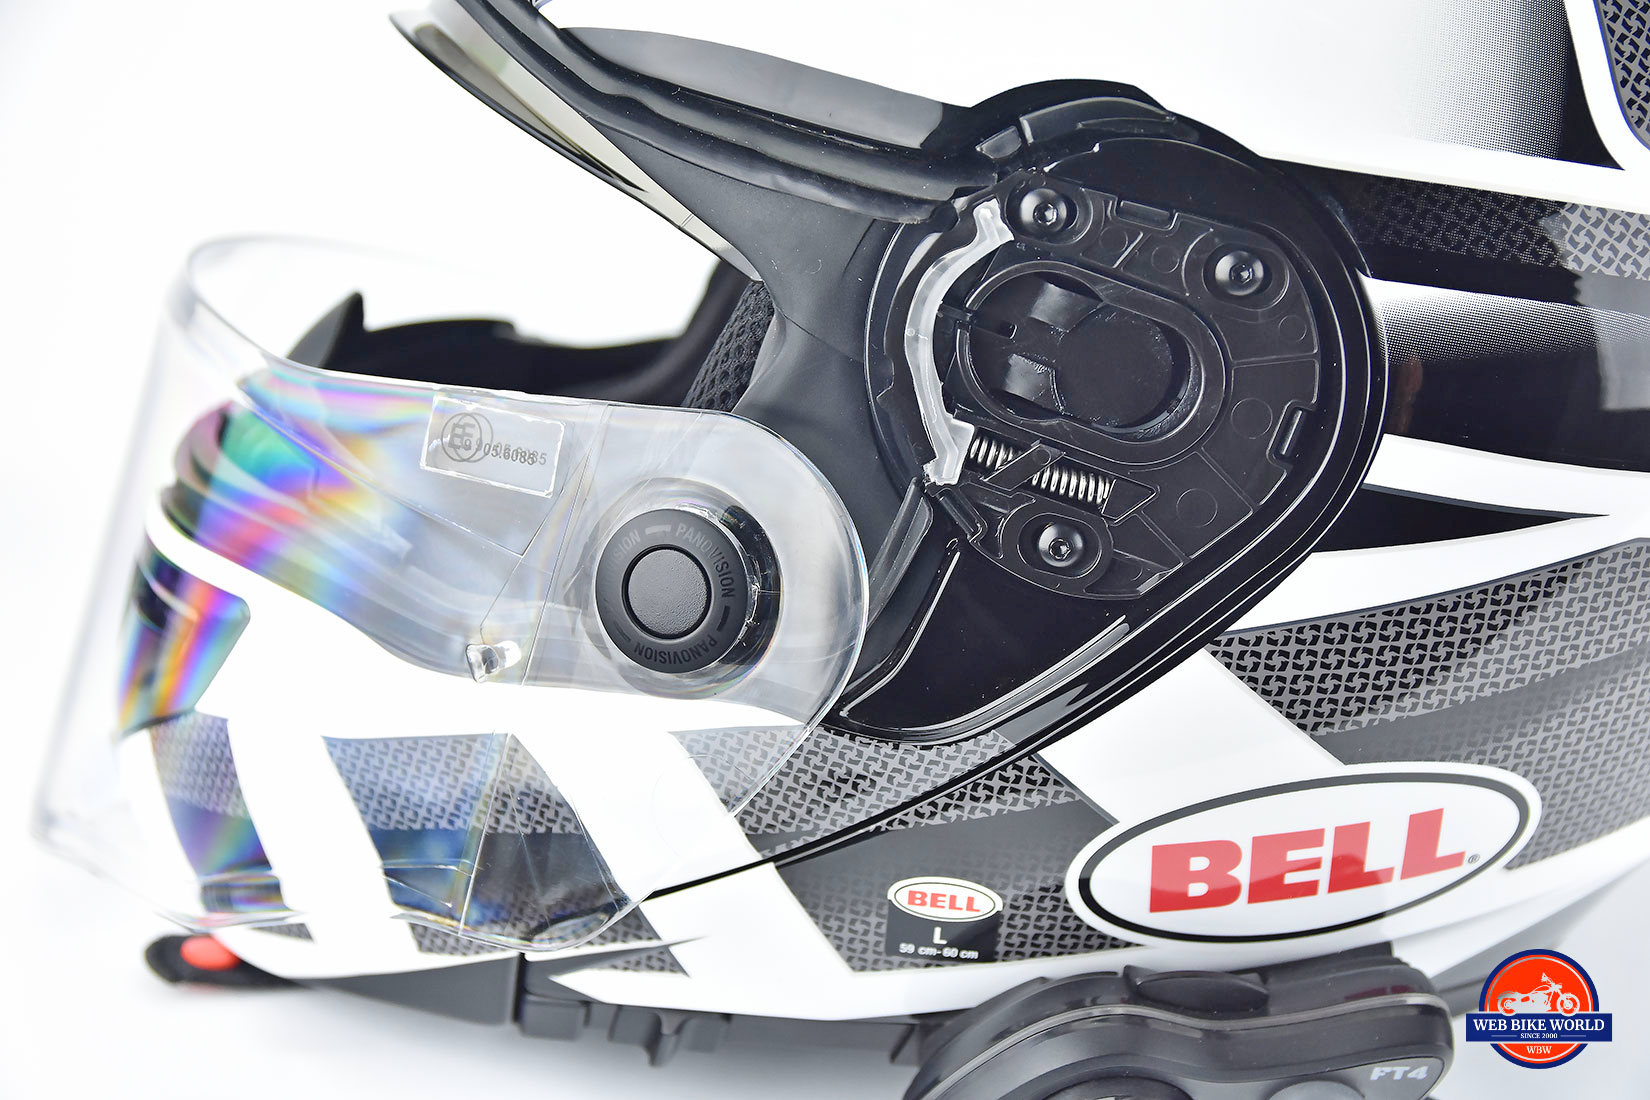 The Bell SRT Modular visor and hinge.